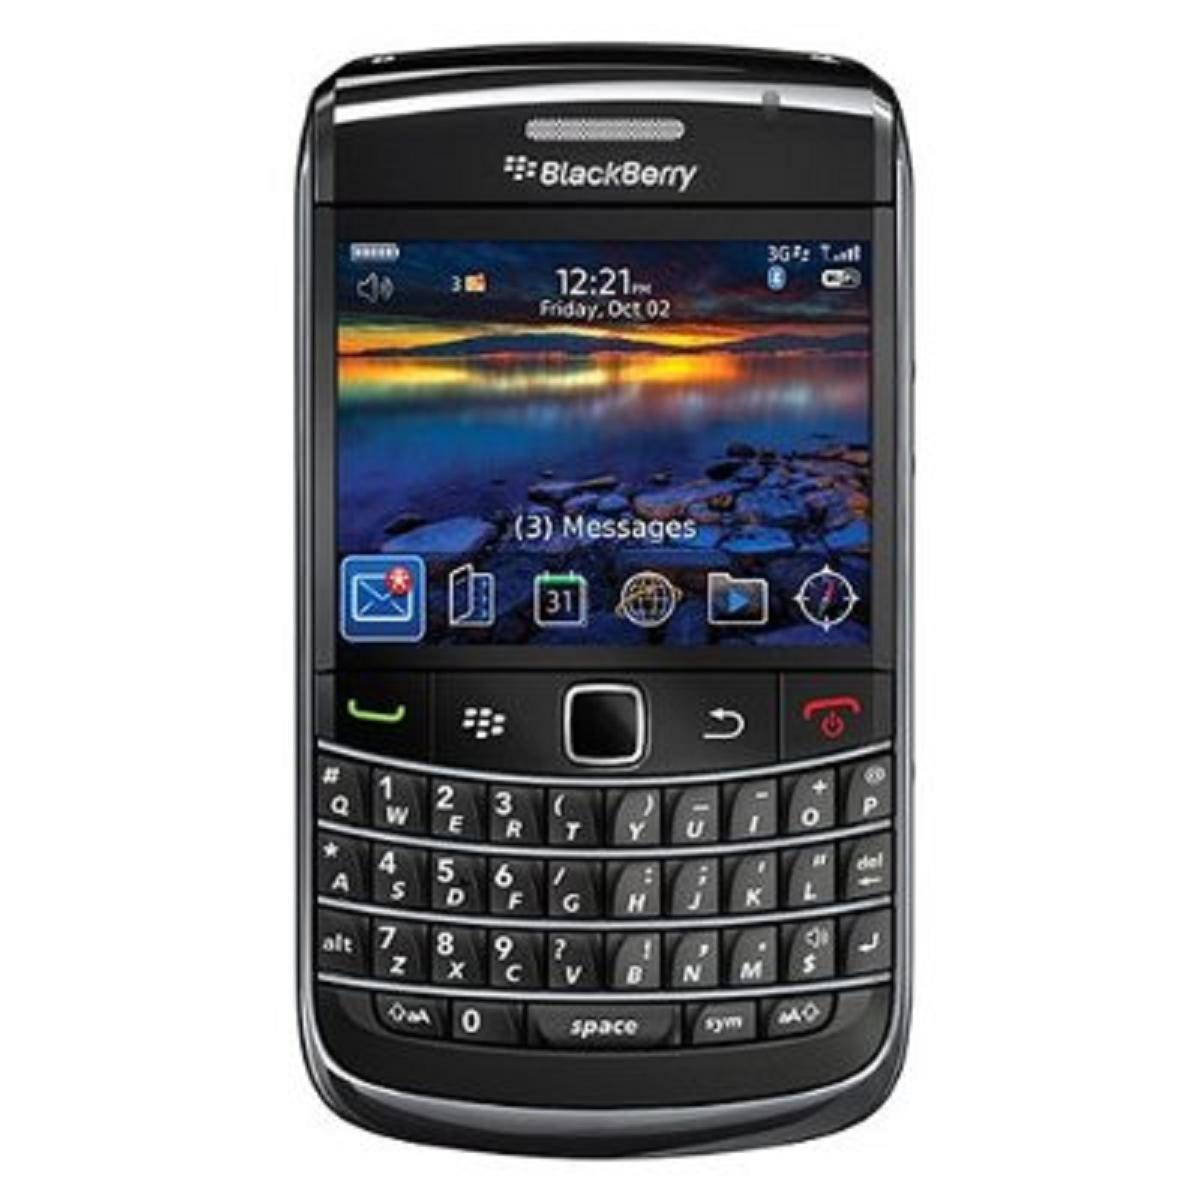 Amazon.com: BlackBerry BOLD 9700 Smart Unlocked Phone, Quad Band, 3 MP  Camera, Bluetooth, GPS, and 1 GB Internal Storage - No Warranty: Cell  Phones & ...